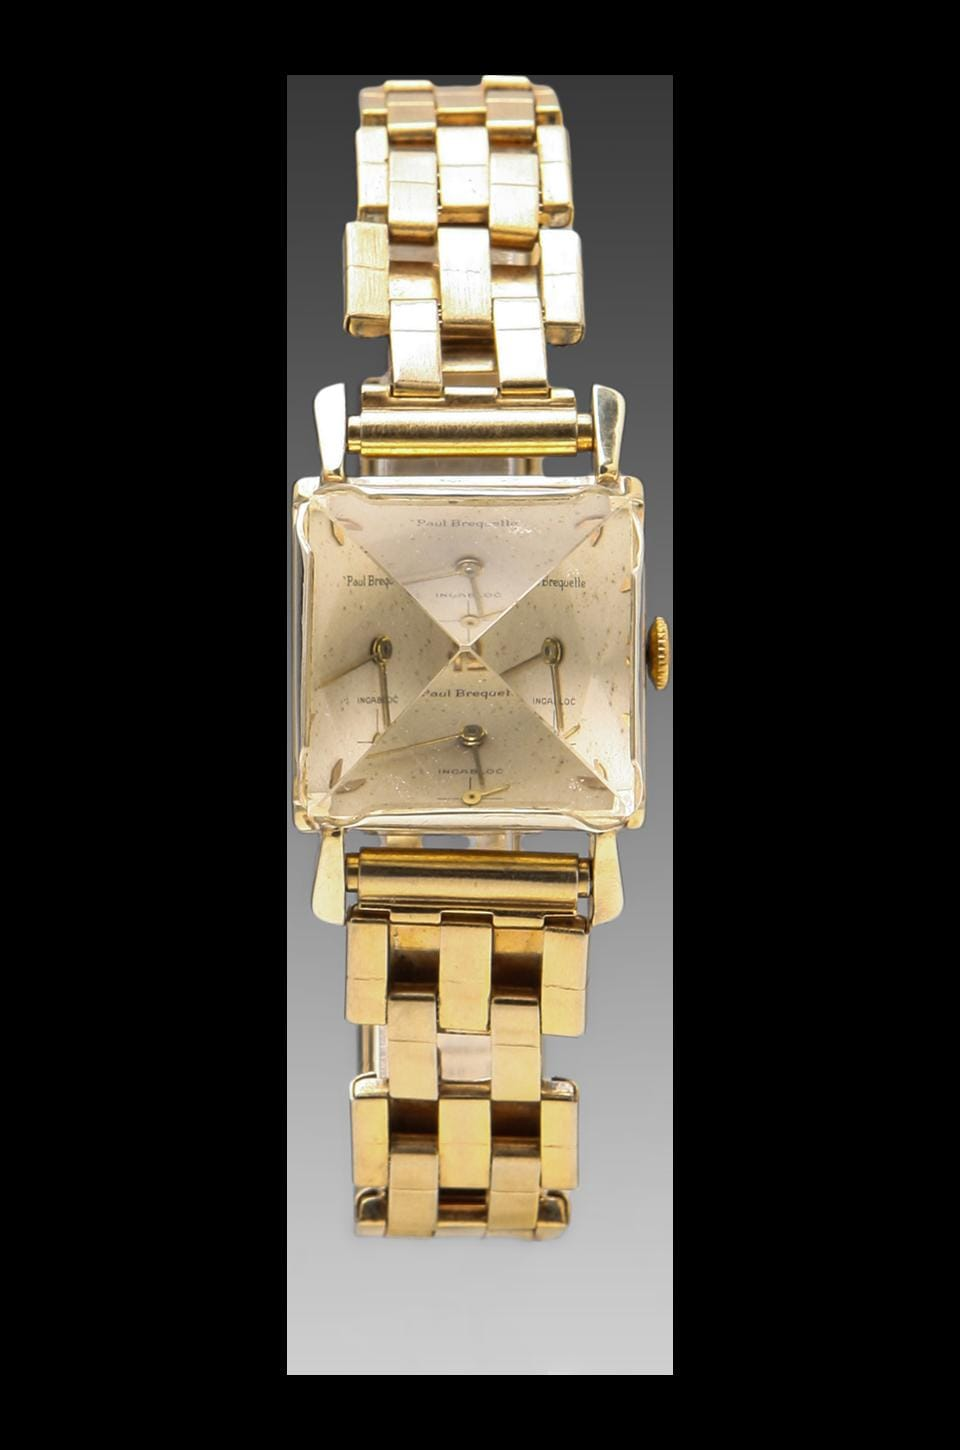 Unearthen Large Quartz Pyramid Analog Watch in Gold